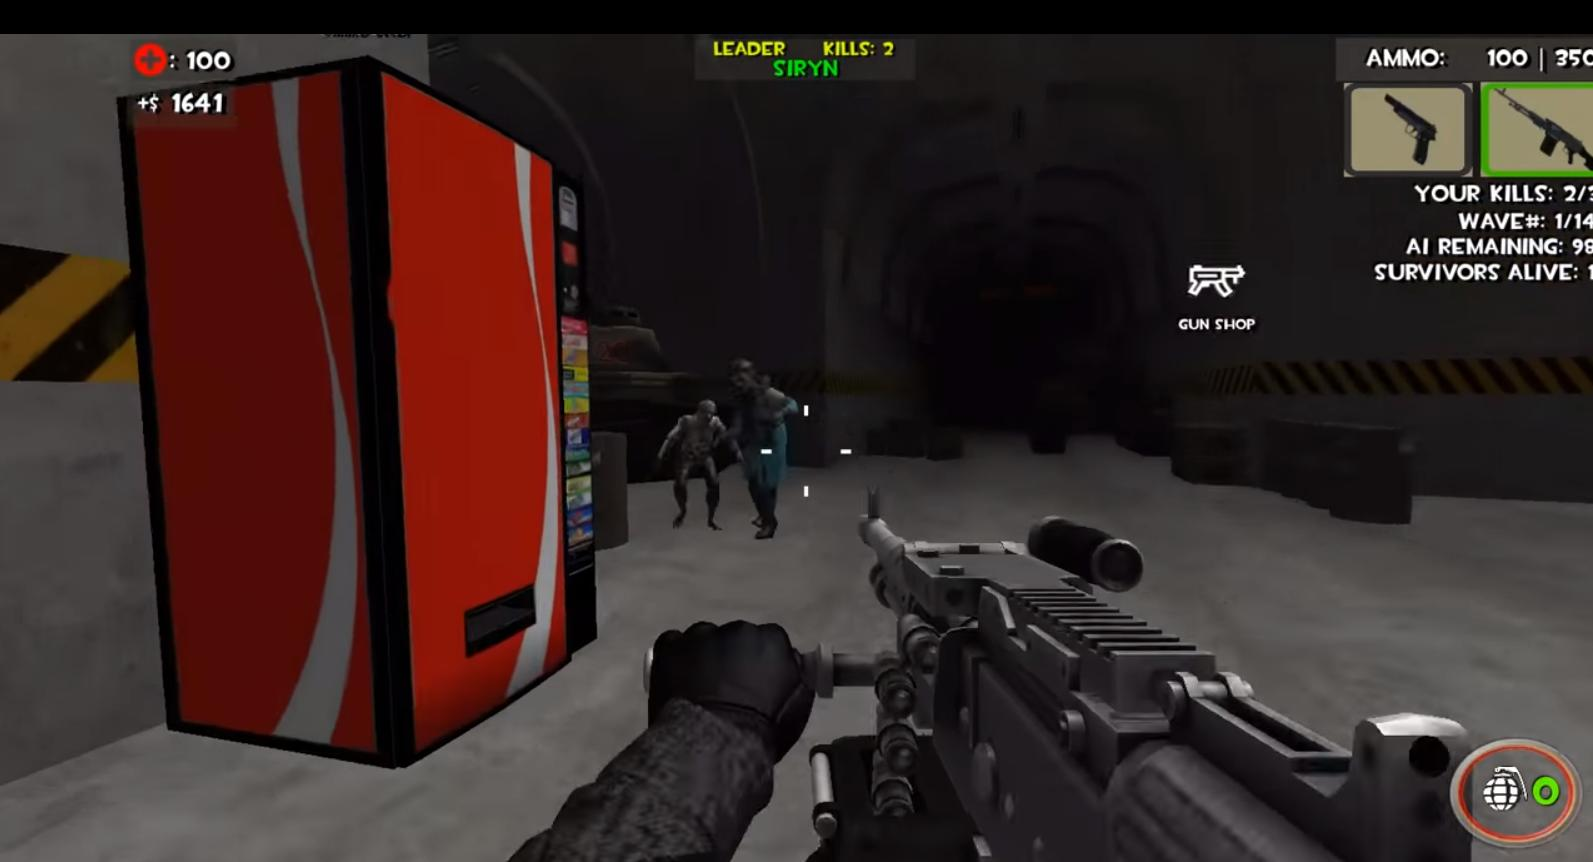 Zombie Fps Games In Roblox Realistic Zombie Survival Warfare For Android Apk Download